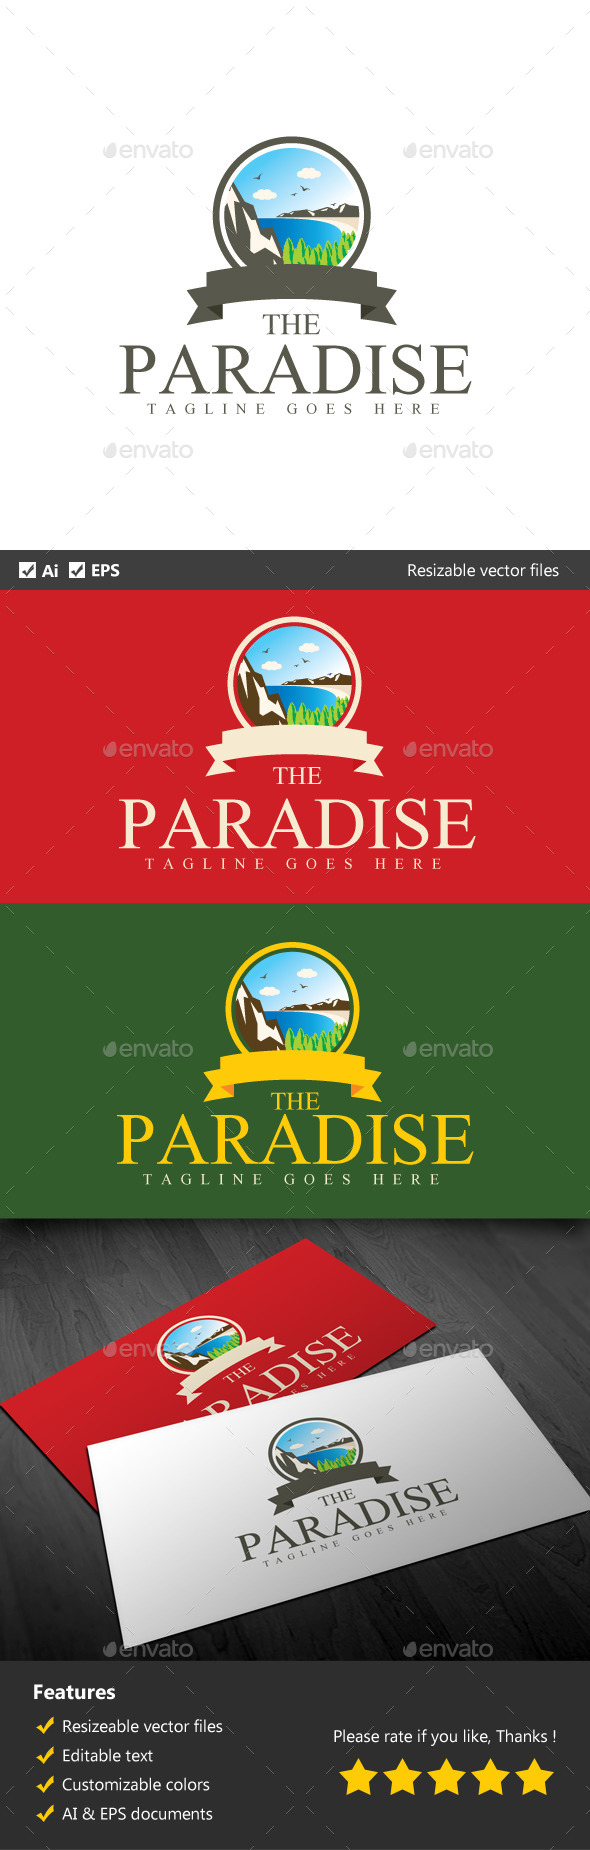 GraphicRiver The Paradise 10670002